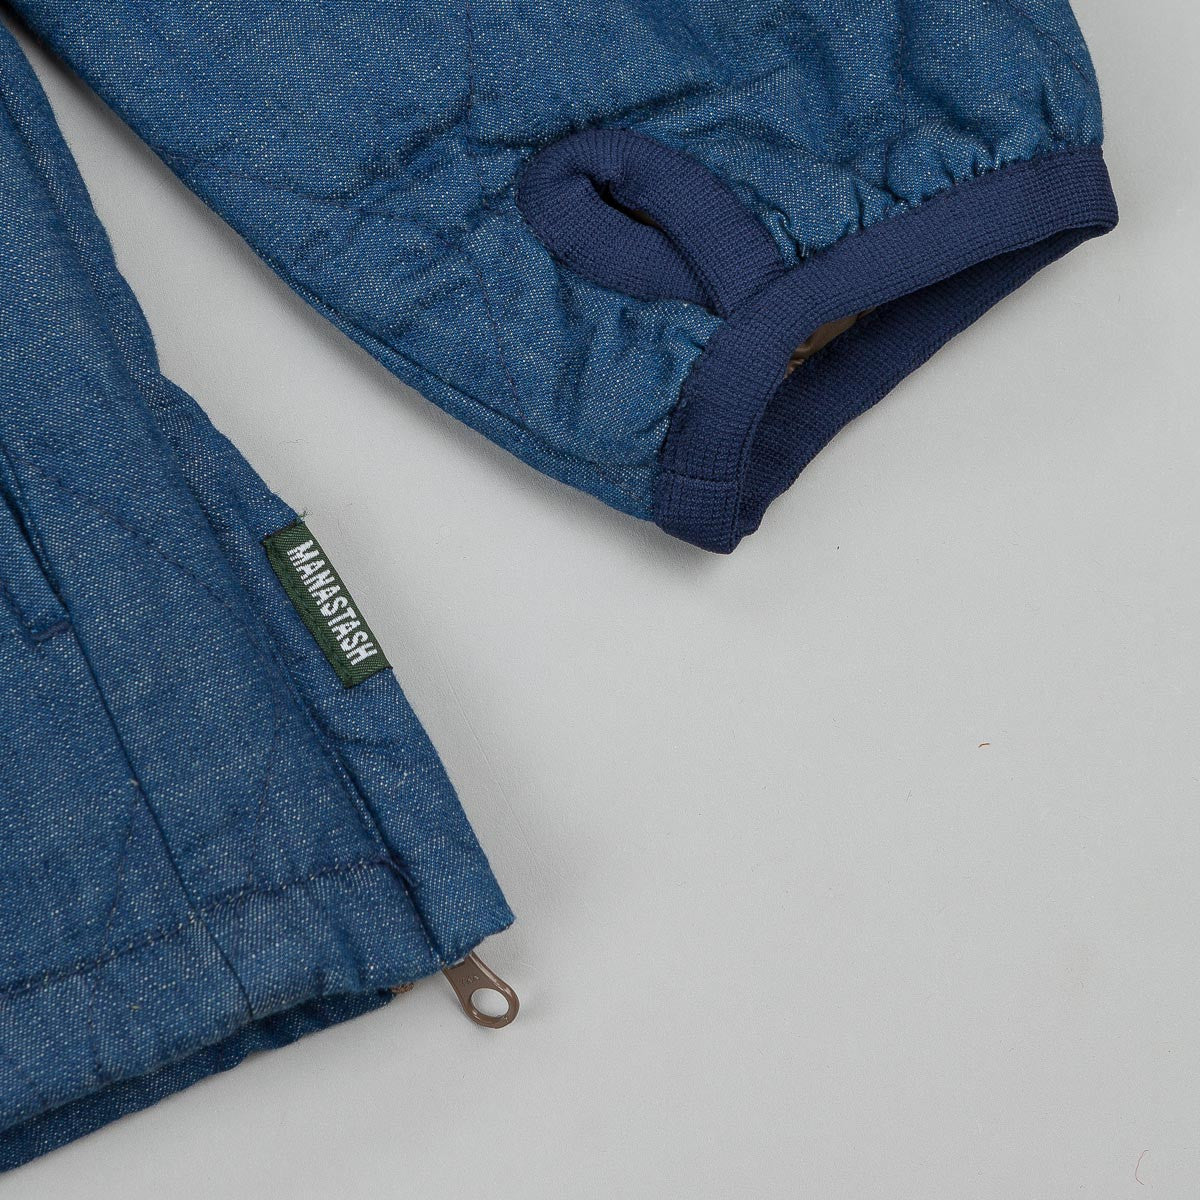 Manastash Thermolite® Camp Layer Jacket - Indigo